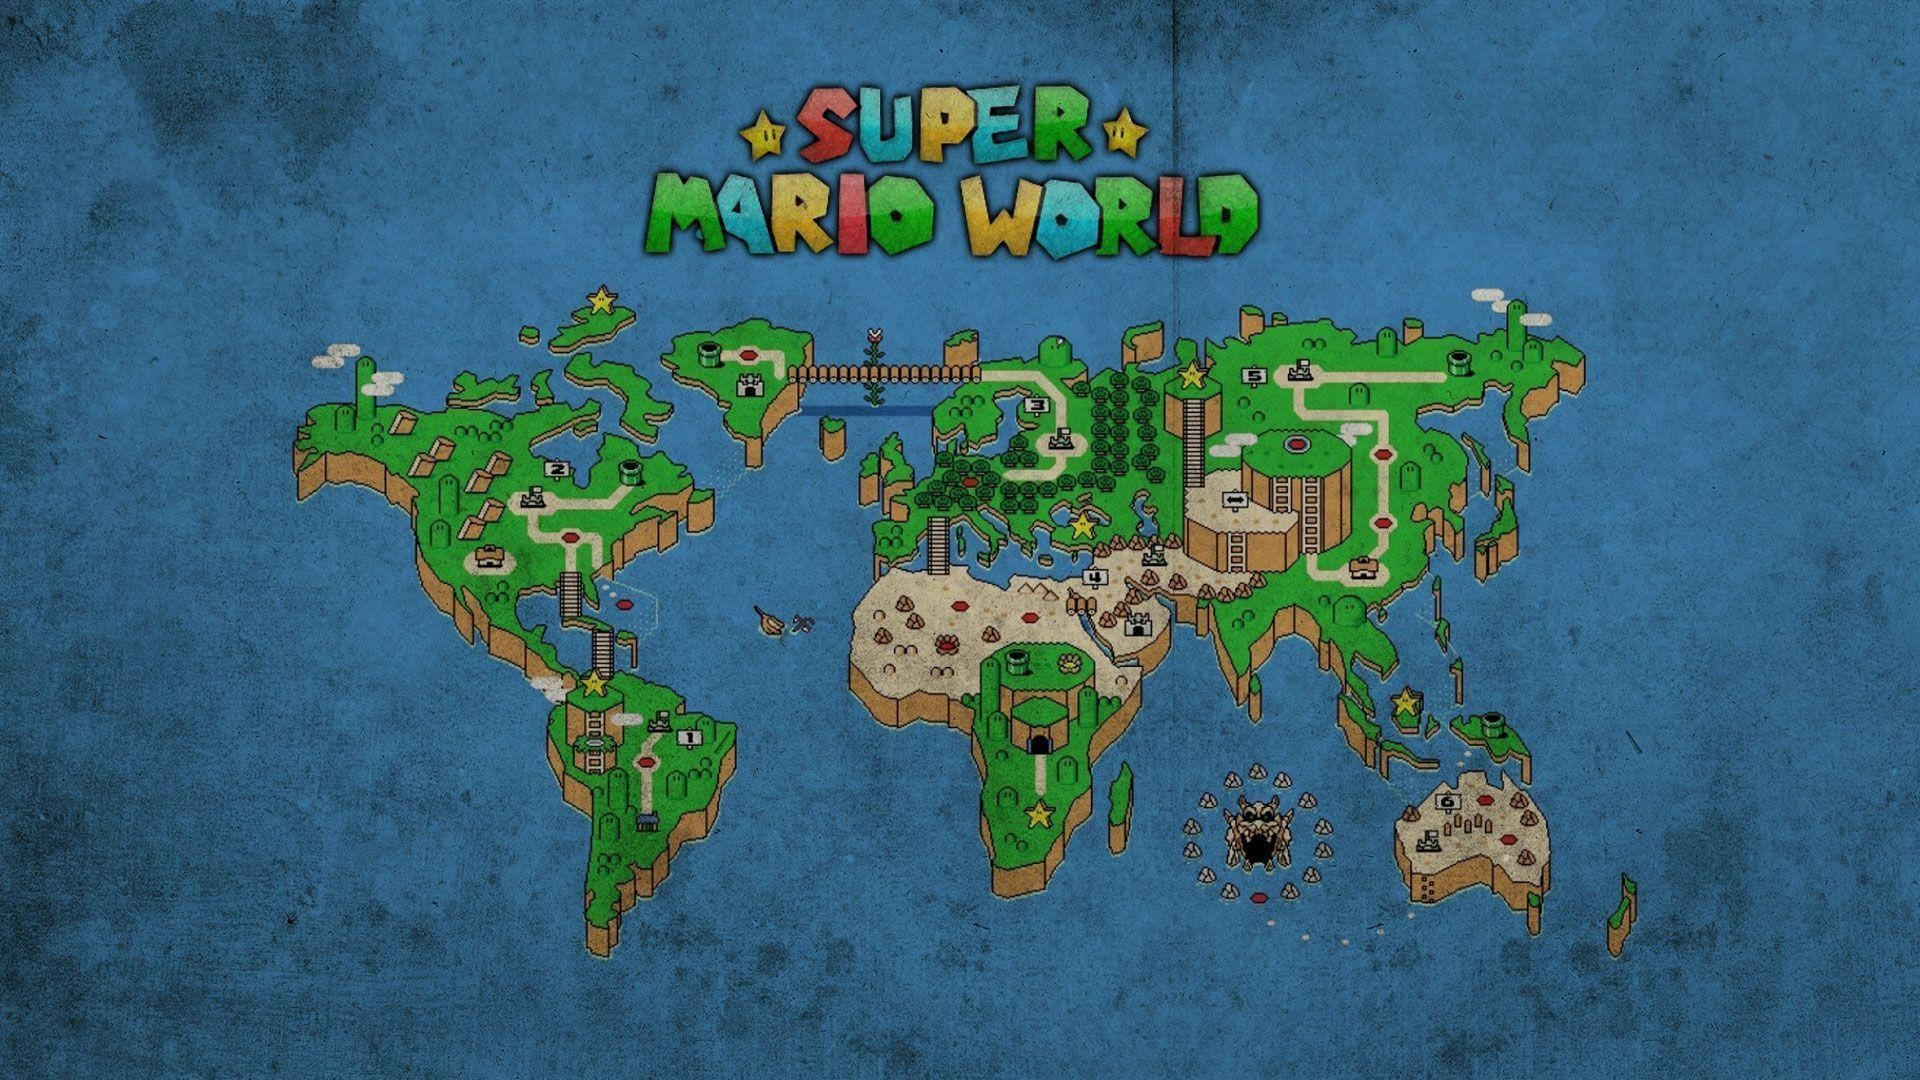 1920x1080 Fonds d'écran Super Mario World : tous les wallpapers Super Mario .